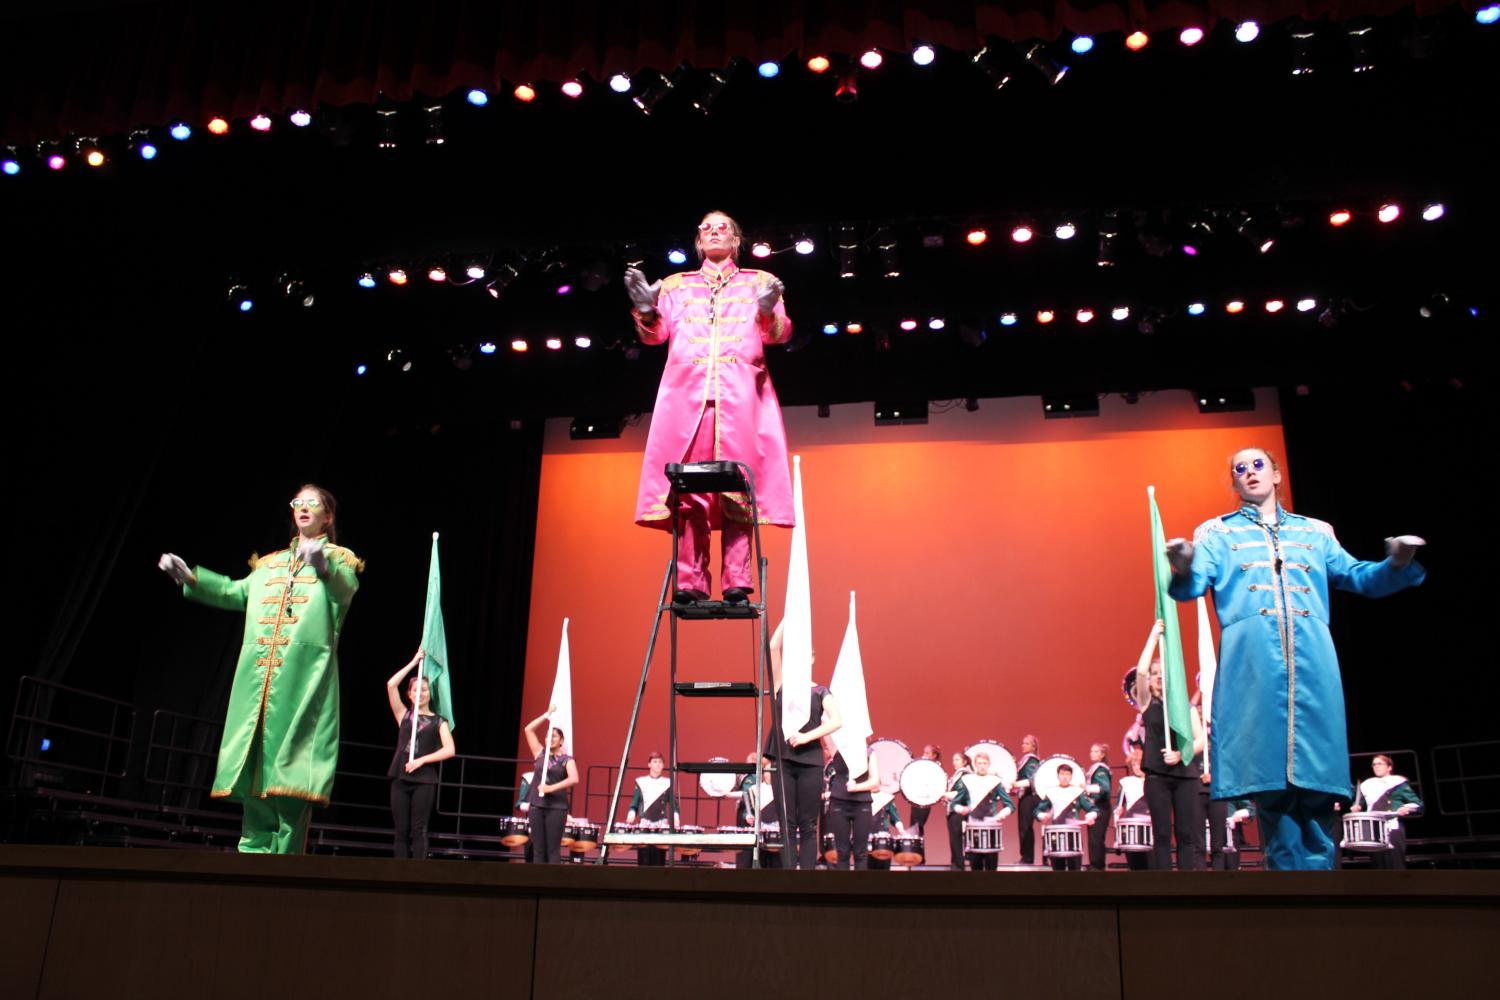 FHC Band puts on annual Bandtasia performance